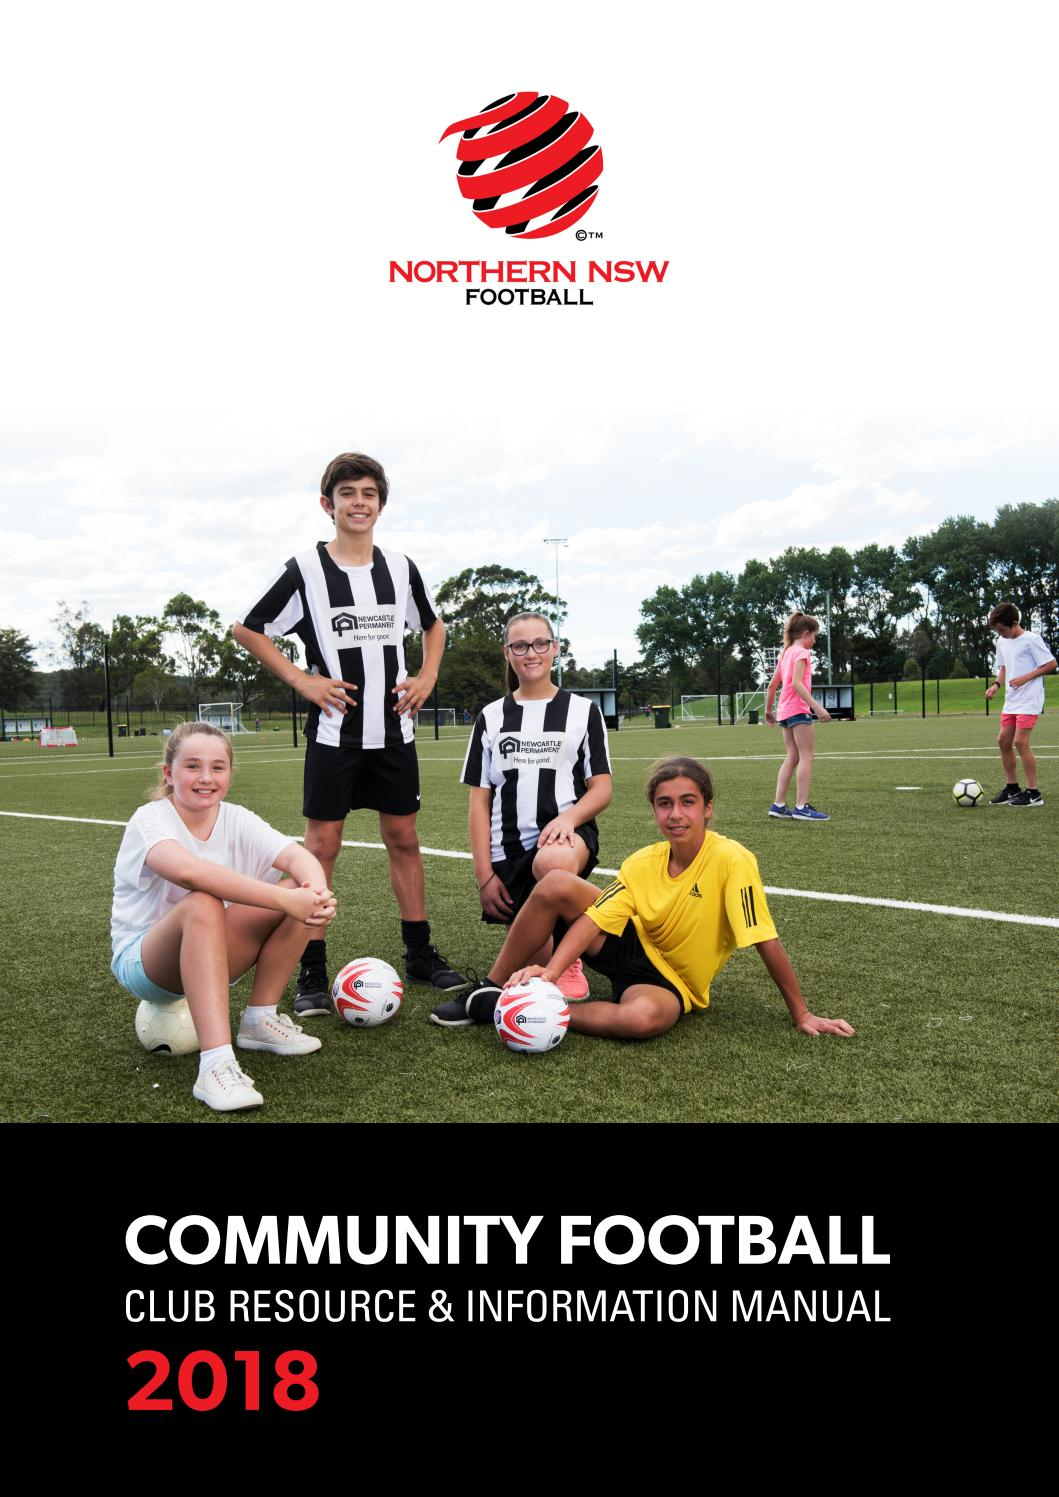 75409d1fd33 NNSWF Community Football Club Resource and Information Manual 2018 by  Northern NSW Football - issuu